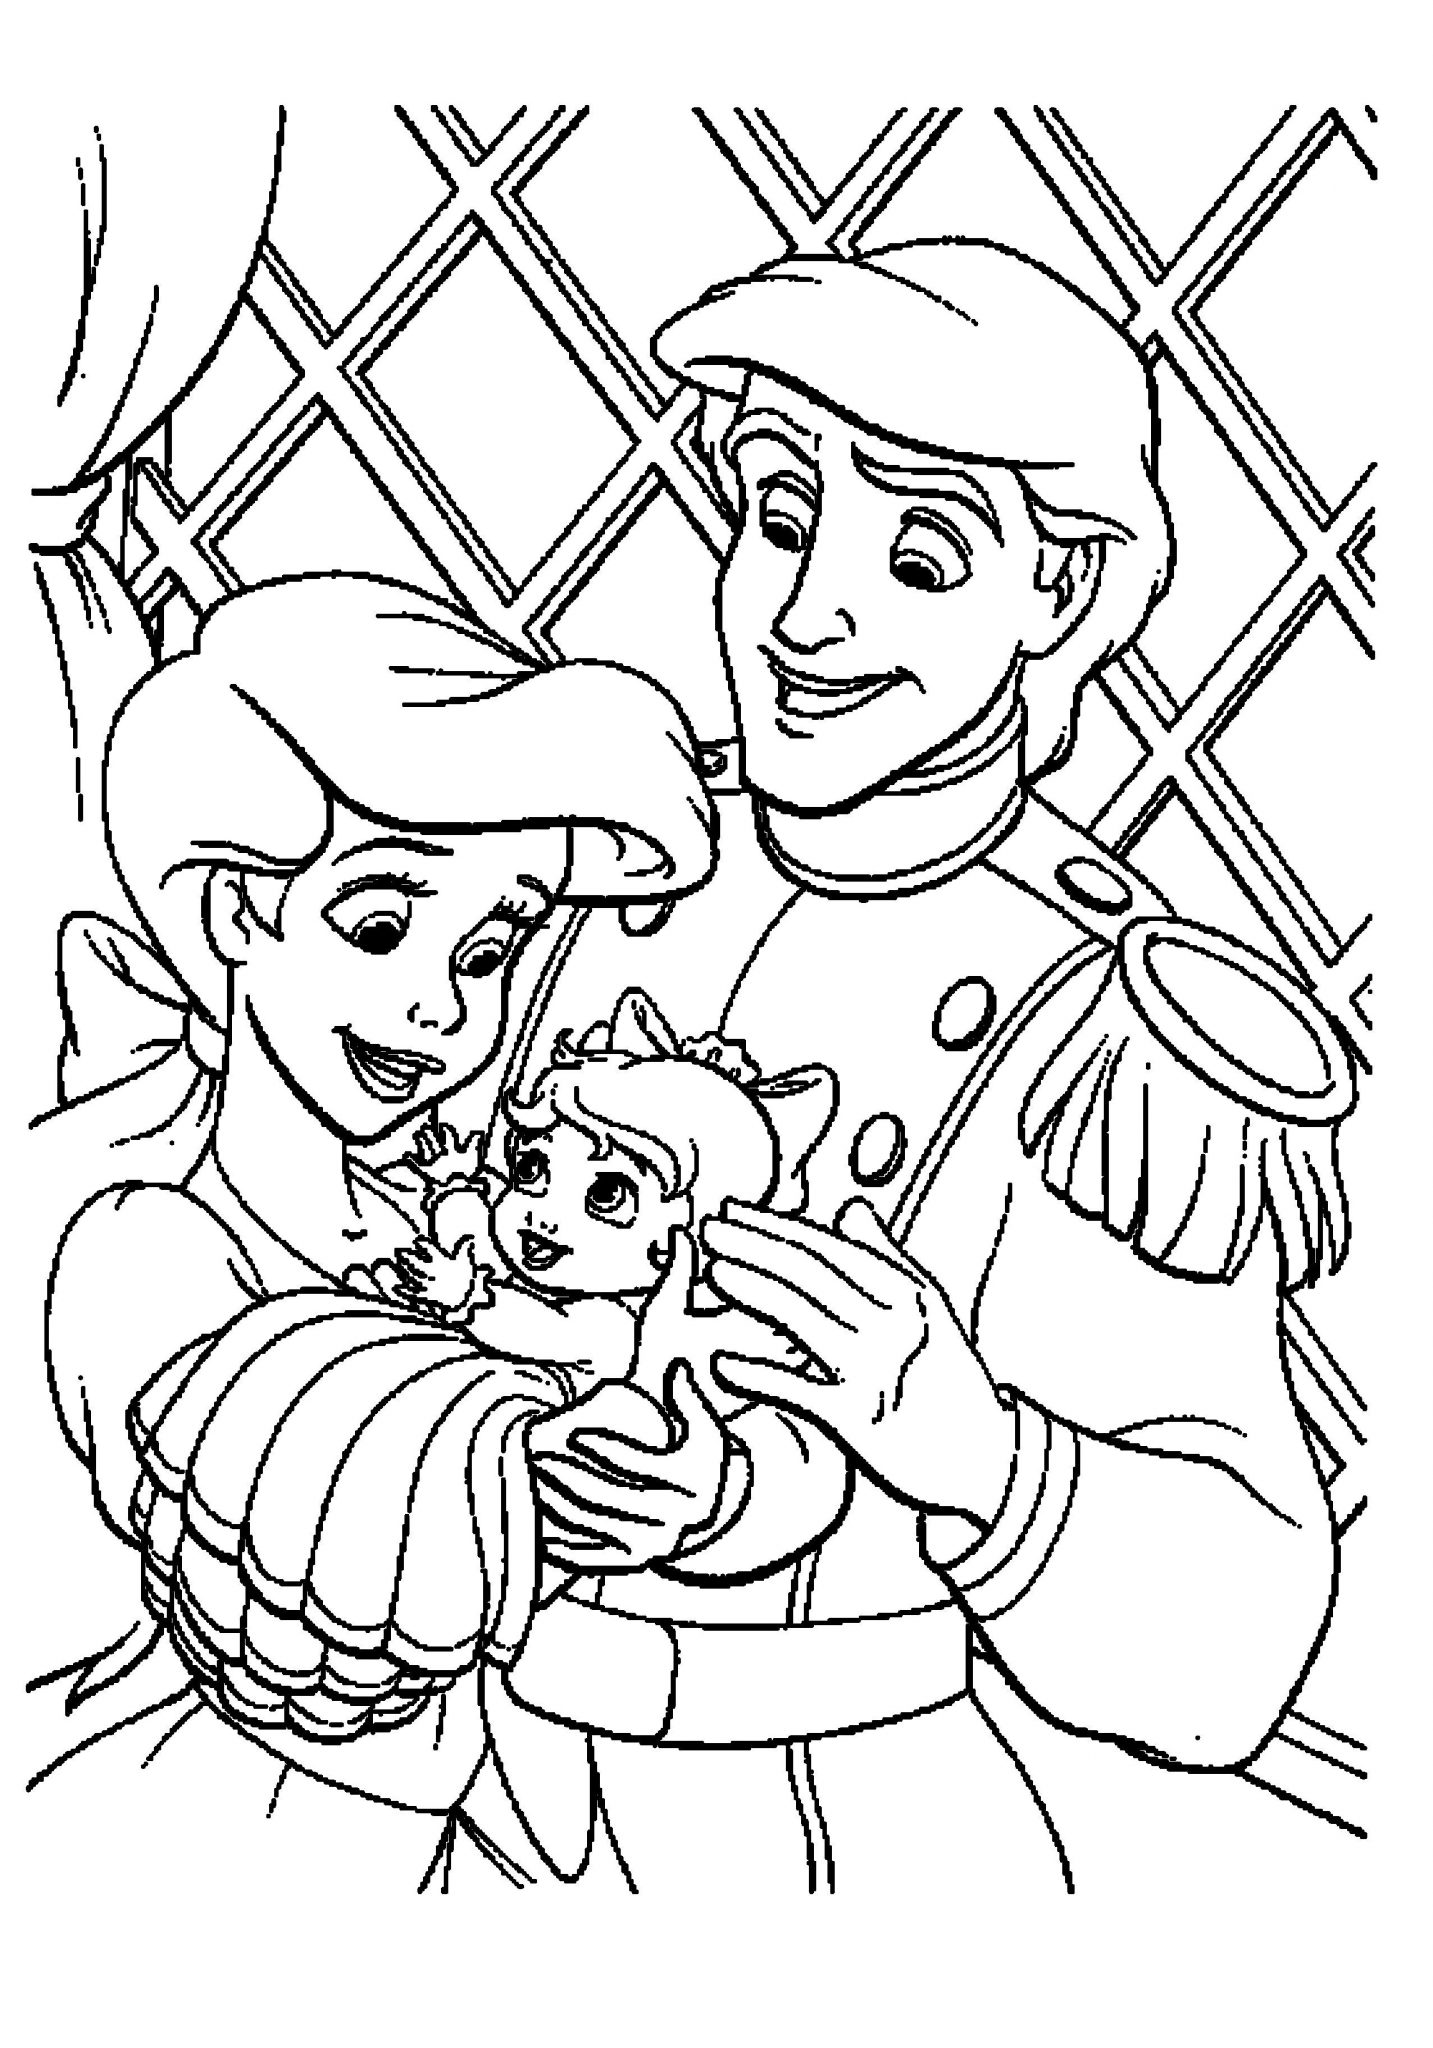 ariel coloring pages free printable the little mermaid coloring pages disney free printable printable pages free coloring ariel